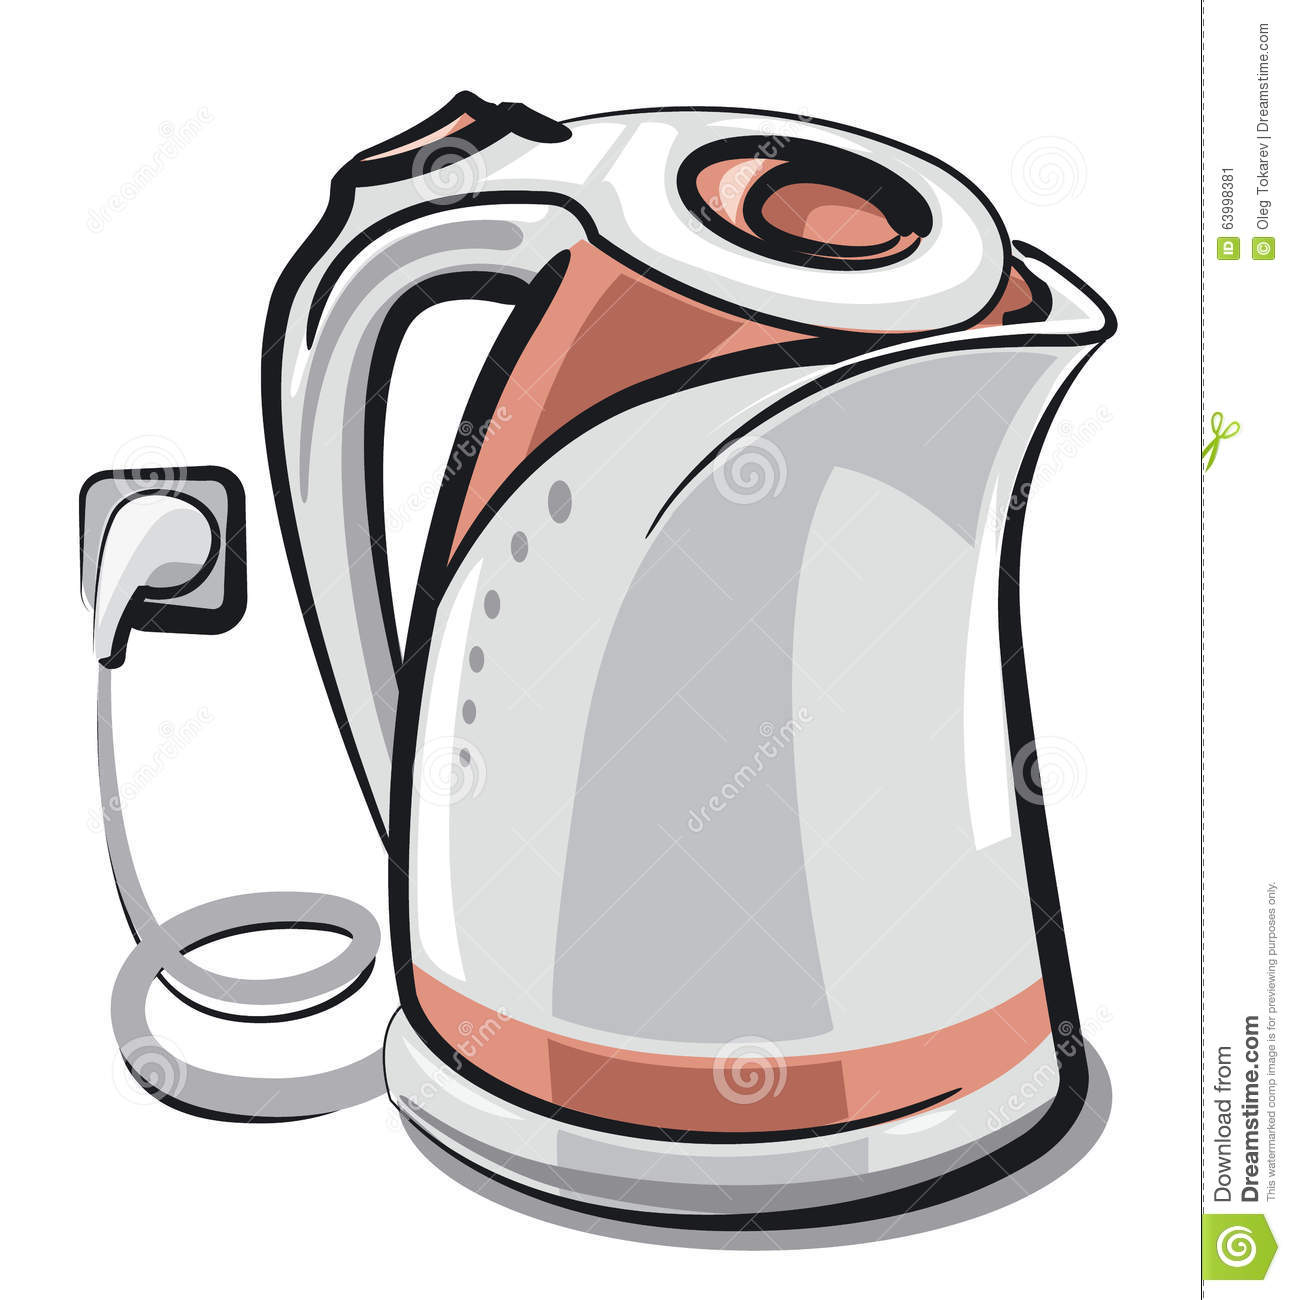 Electric kettle stock illustration. Illustration of domestic.